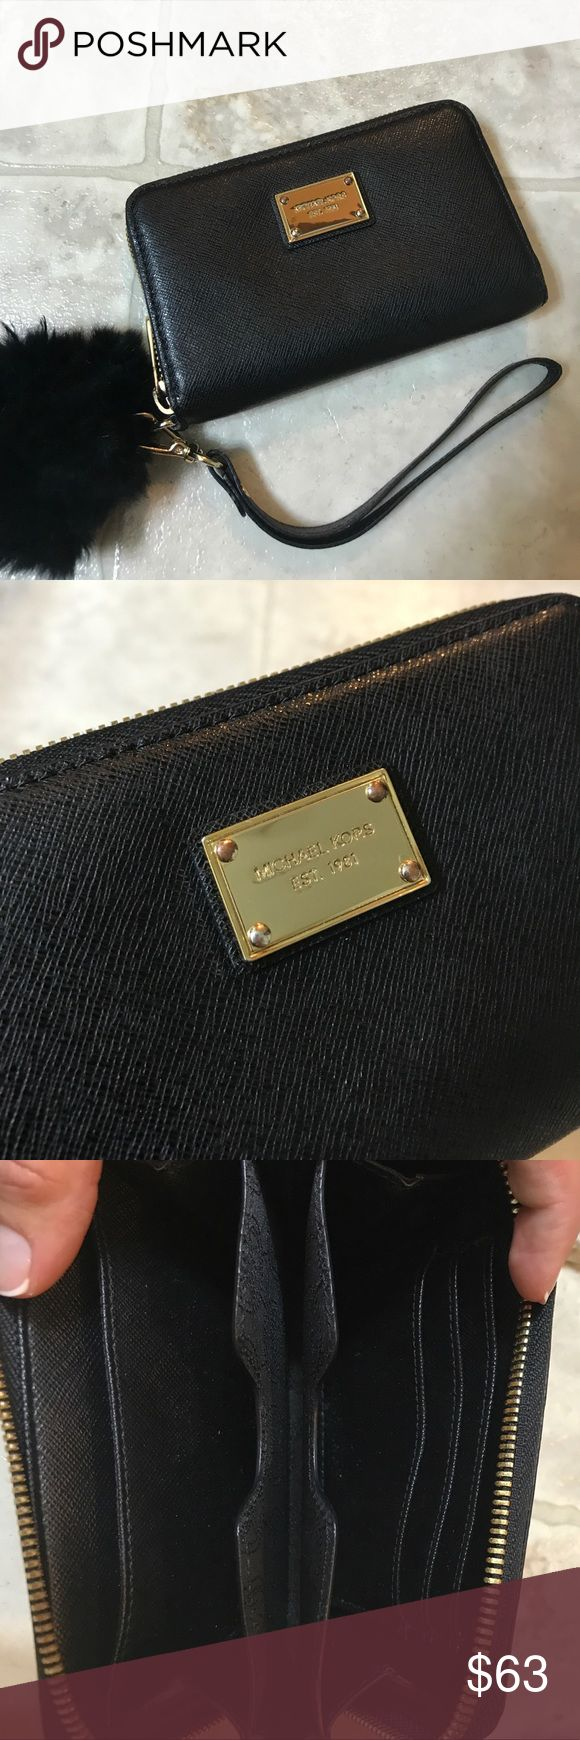 Michael Kors Wallet Great condition! Medium sized wallet! Comes with attachable strap for wrist. Retails for over $100. Michael Kors Bags Wallets